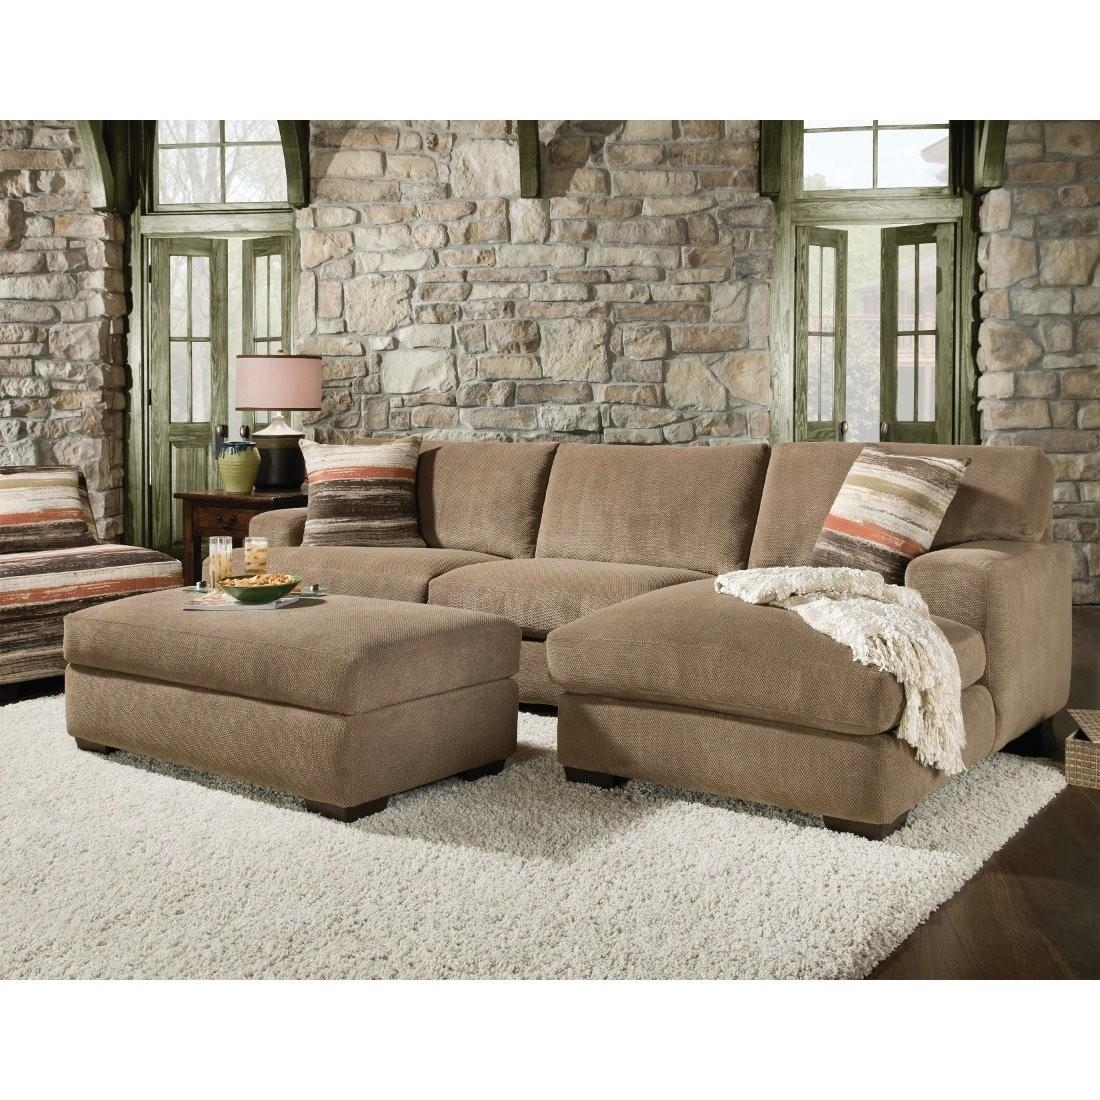 Sofas Center : Cozy Sectional Sofa With Chaise And Ottoman About With Down Feather Sectional Sofa (Image 11 of 15)